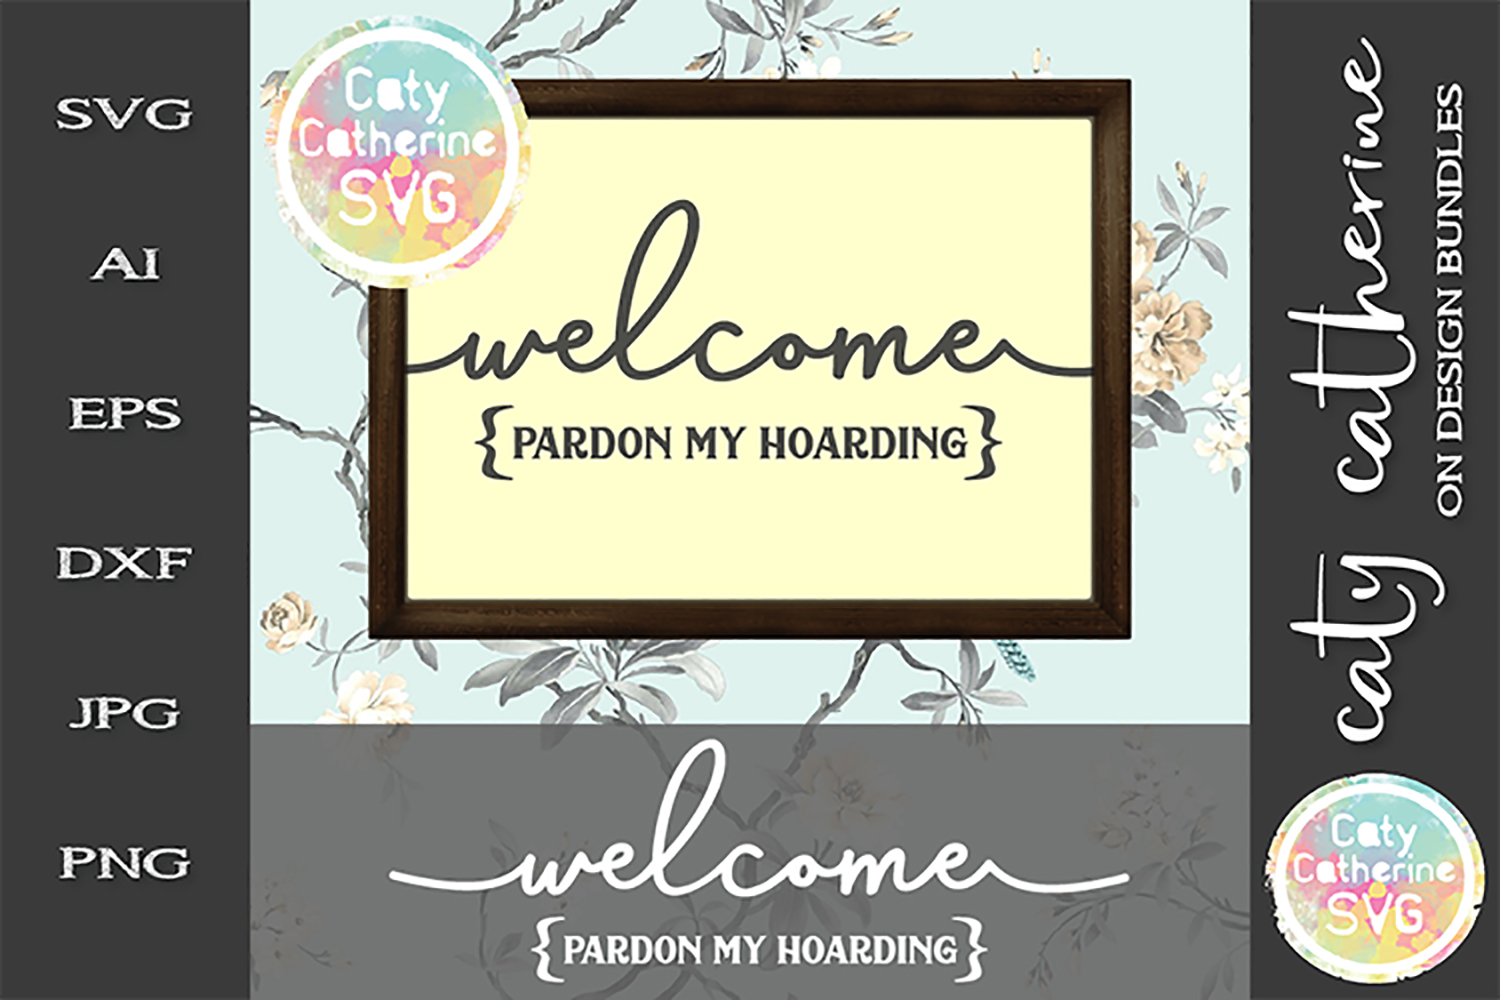 Welcome Pardon My Hoarding House Home Sign SVG Cut File example image 1